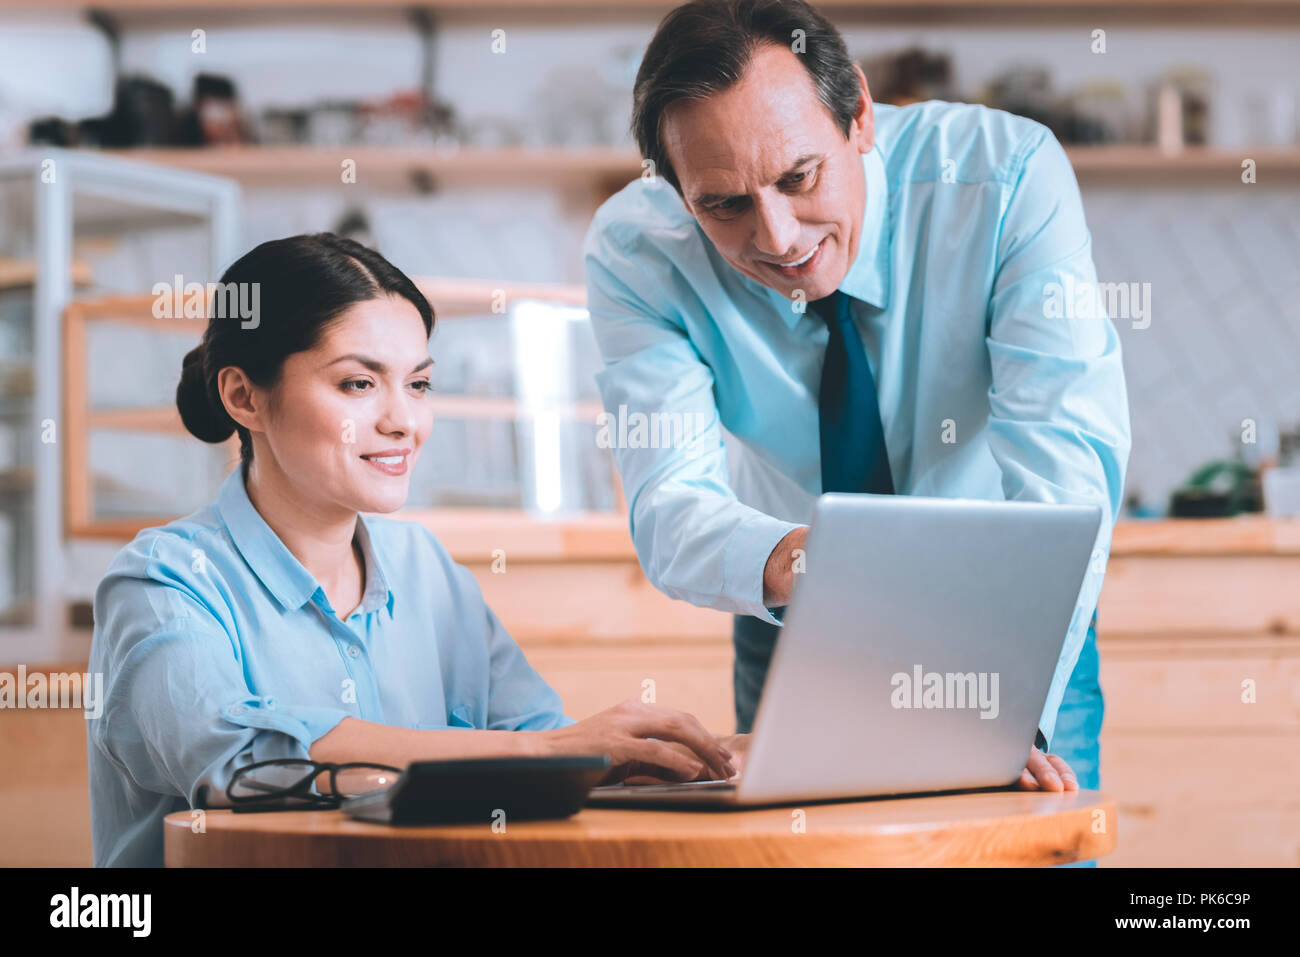 Heureux office worker pointing at laptop Photo Stock